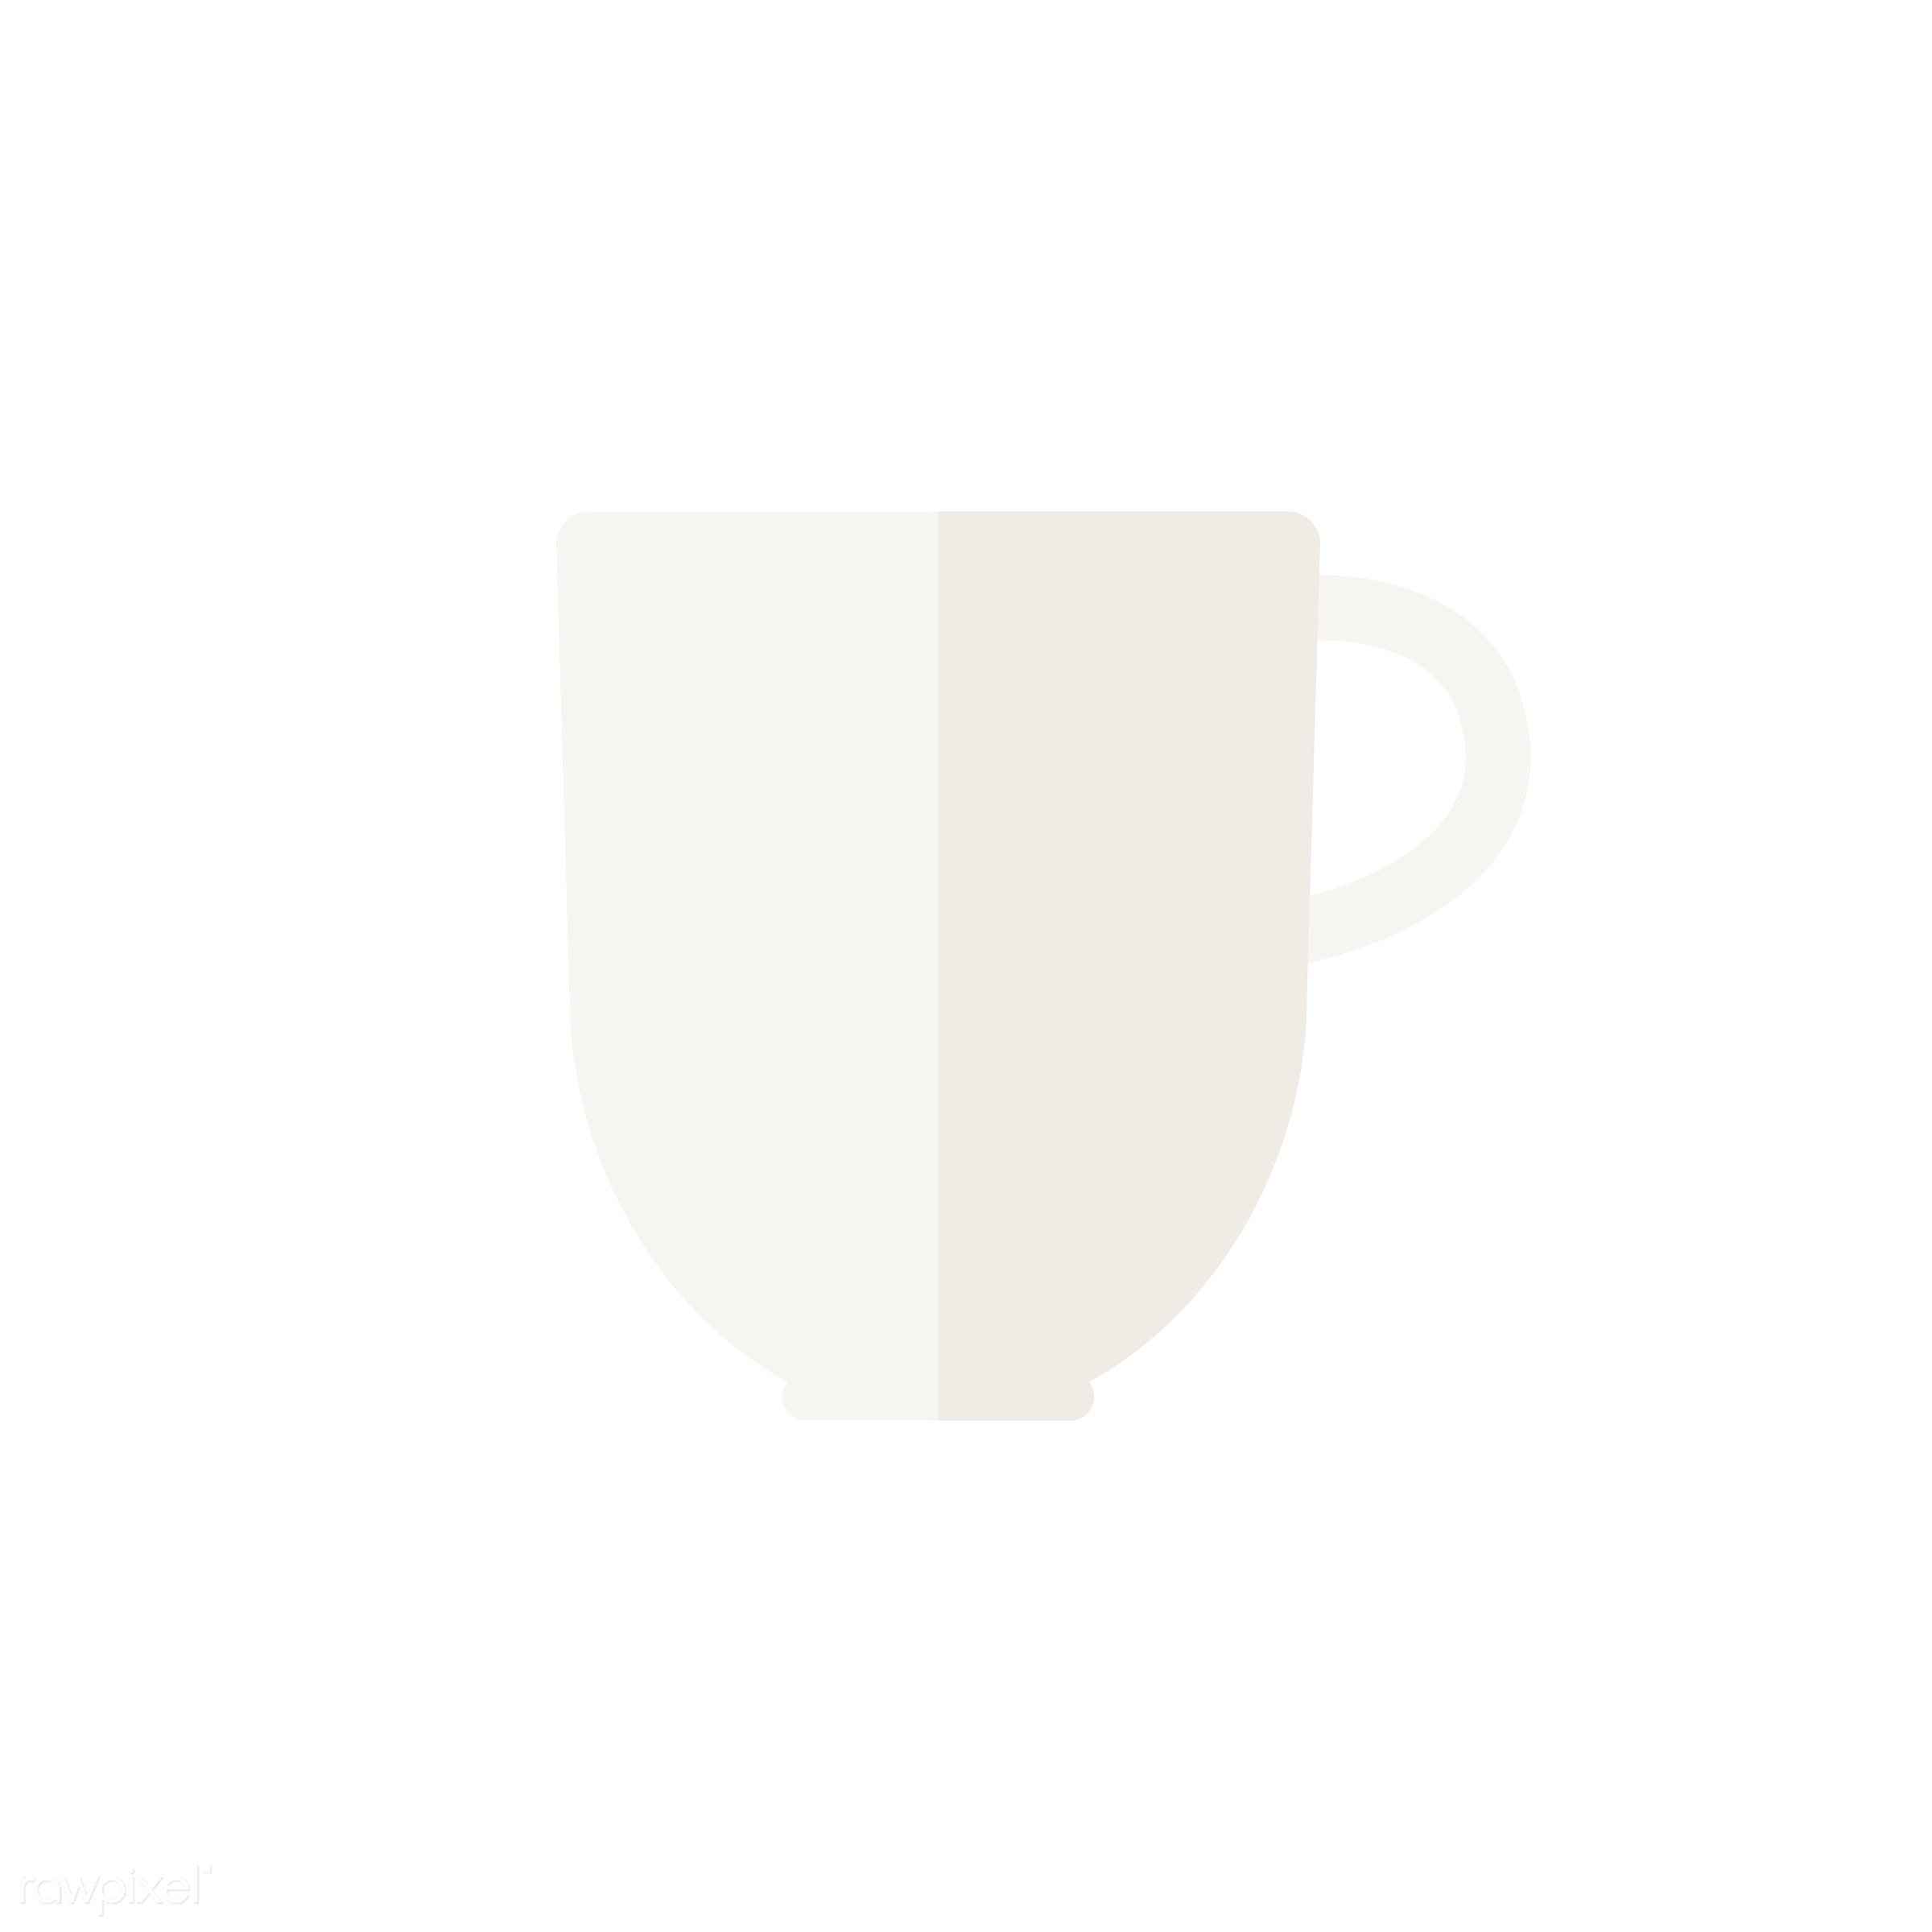 vector, graphic, illustration, icon, symbol, colorful, cute, drink, beverage, water, mug, cup